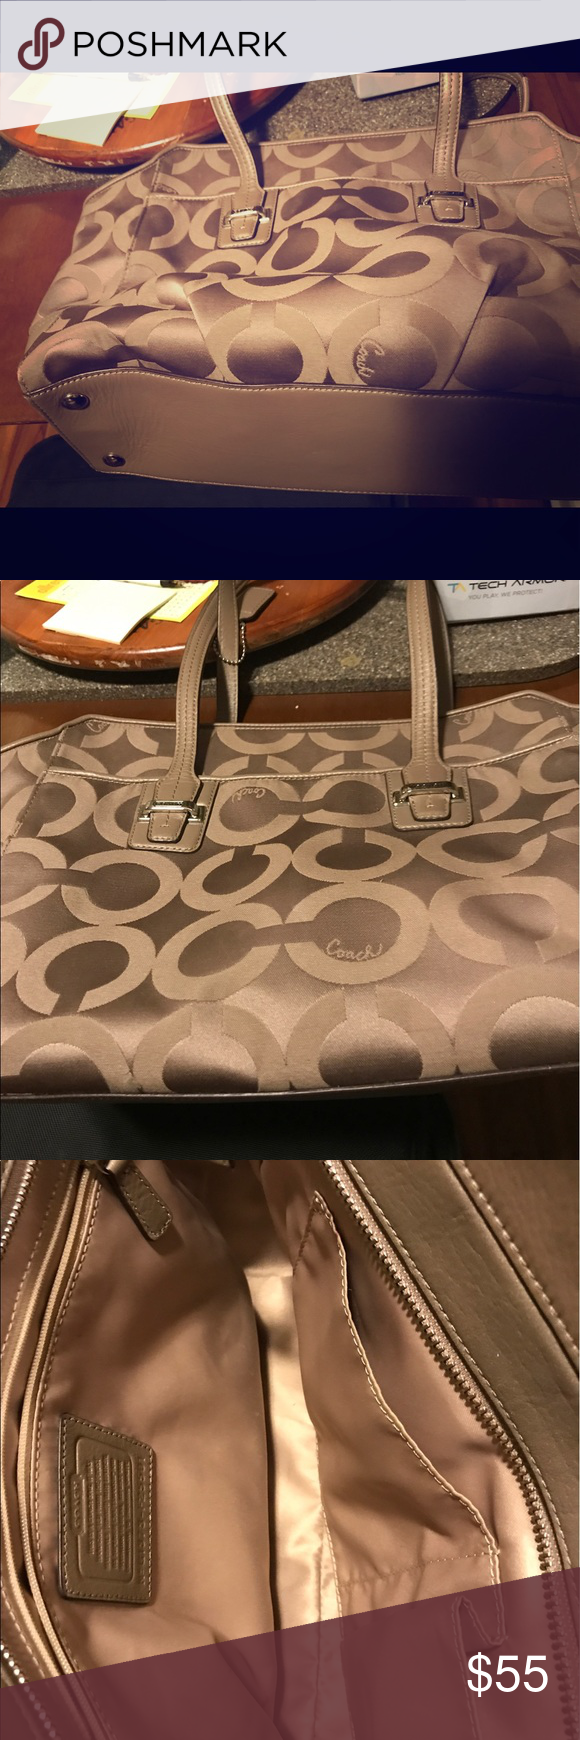 Coach purse This purse is tan with coach on outside and it has room for cell phone and two more areas on the sides.  The middle has been used but in good condition. Coach Bags Shoulder Bags